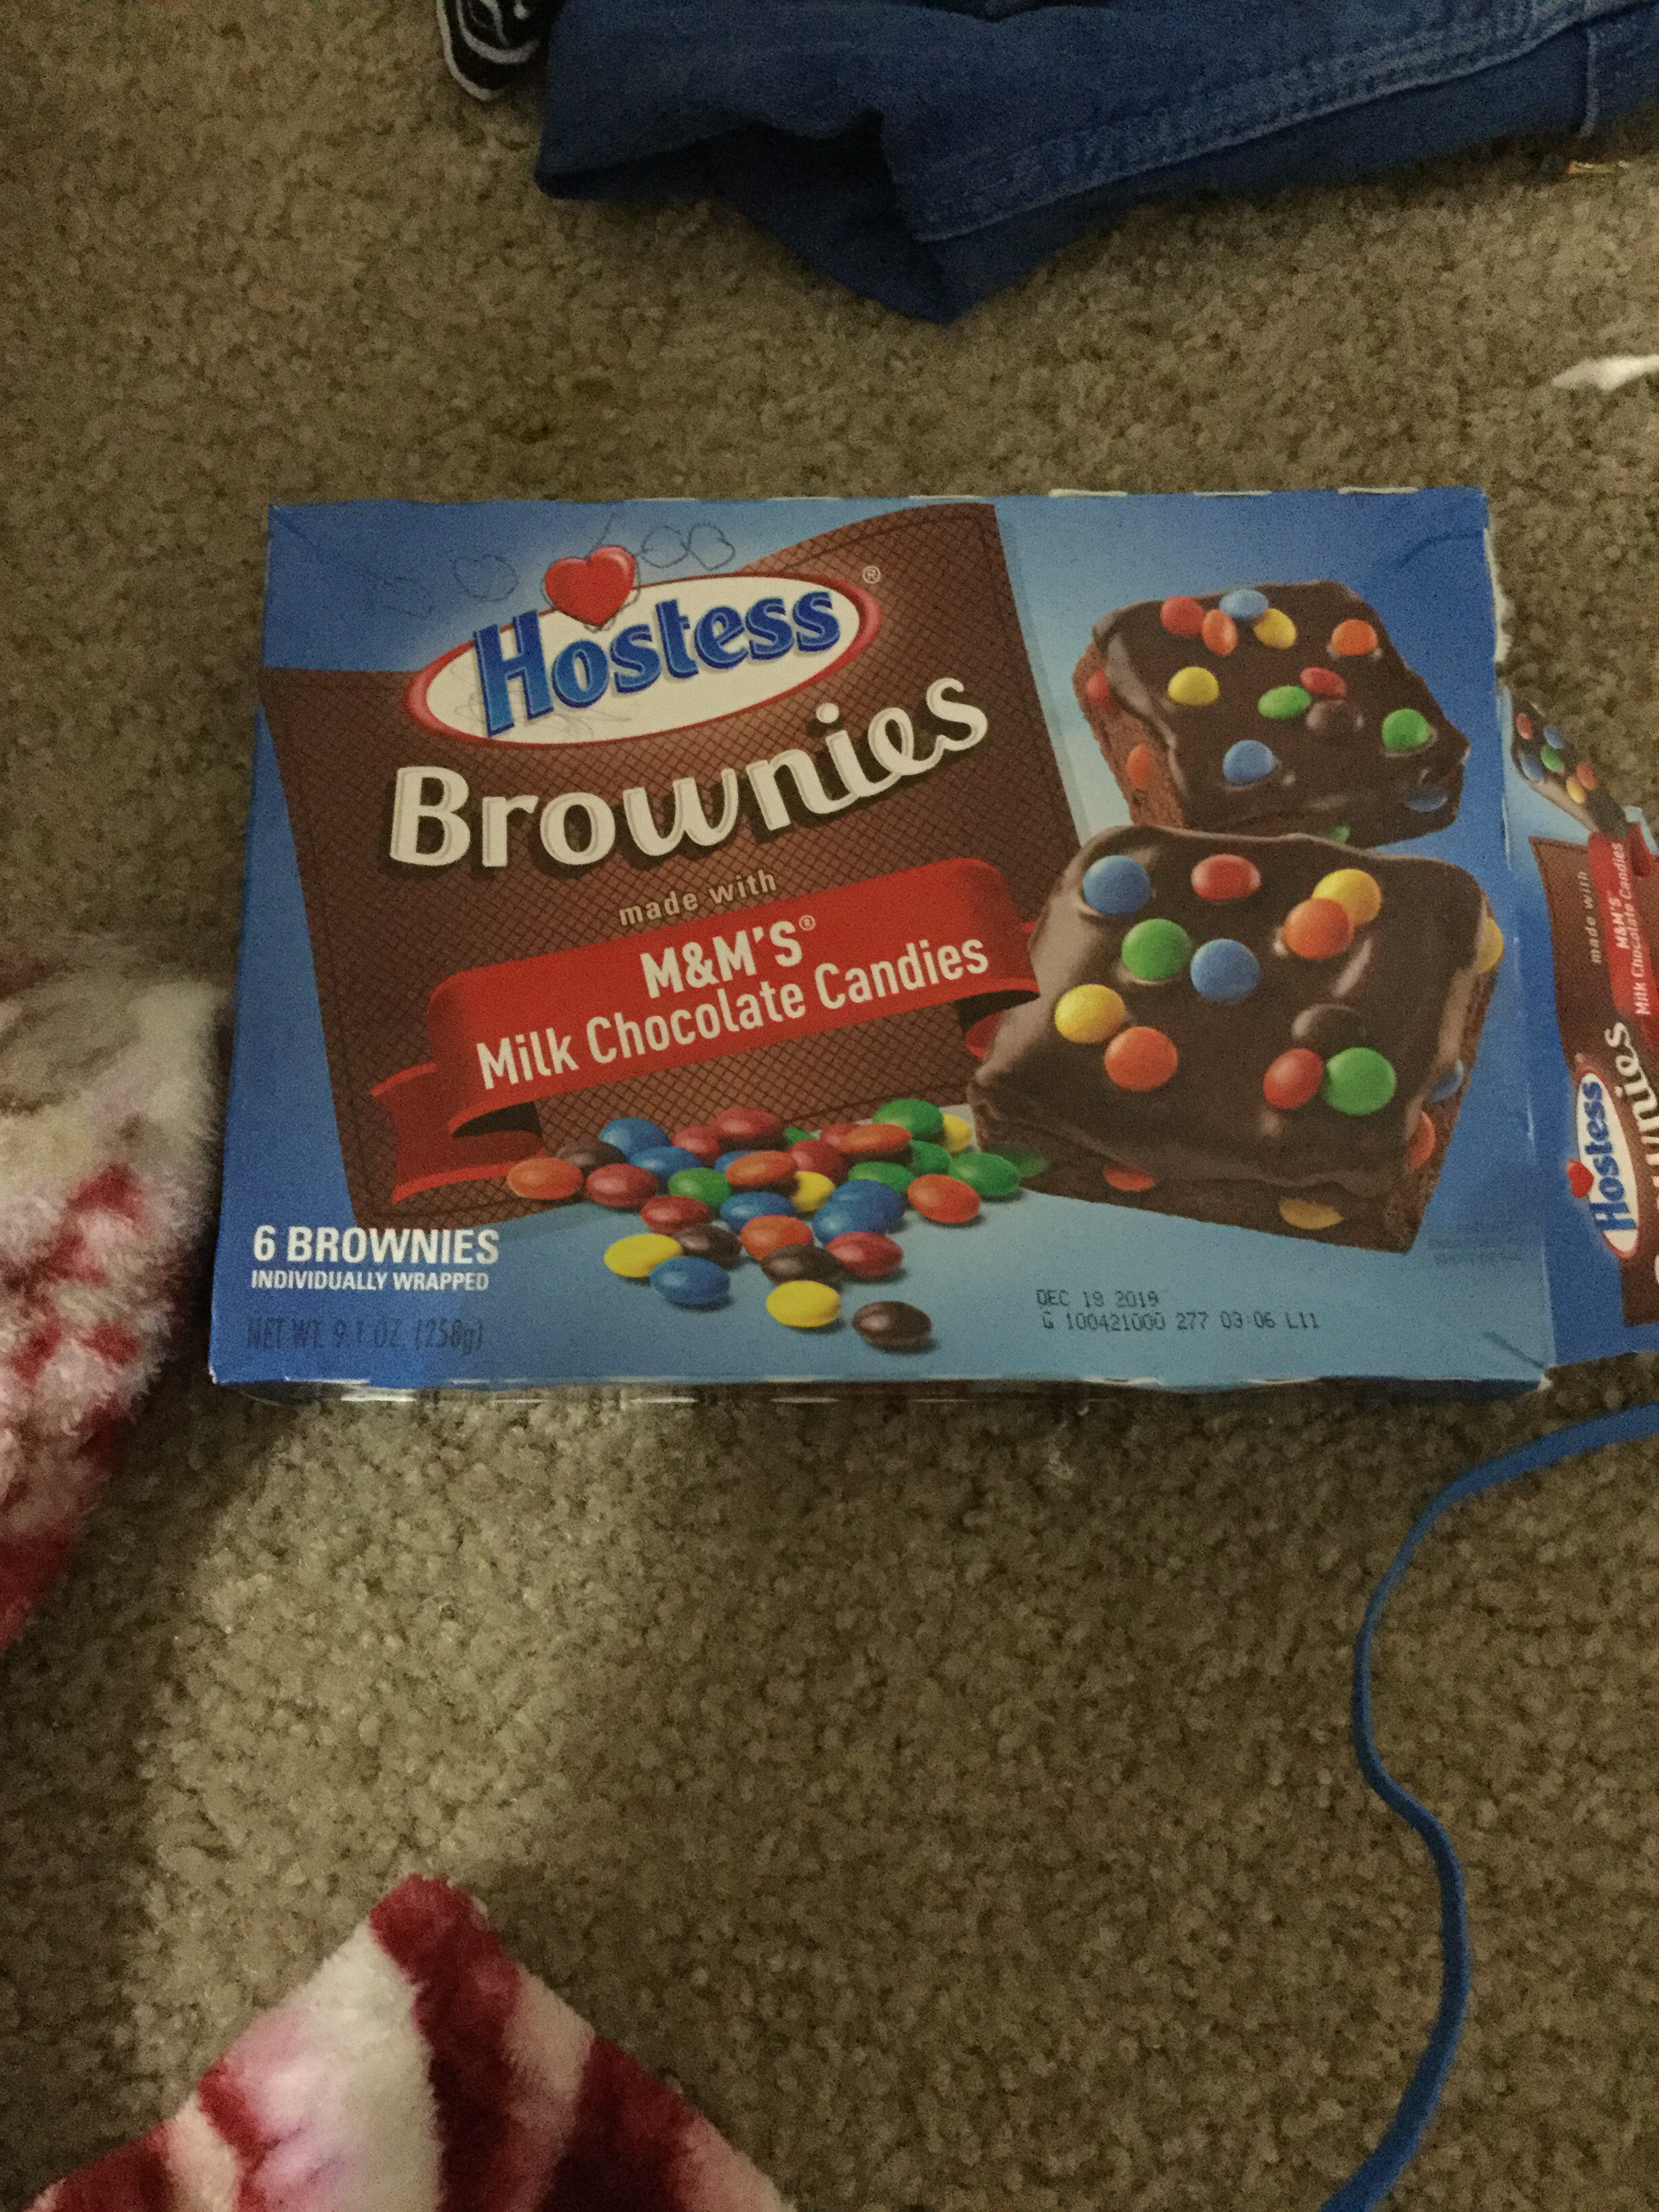 Brownies Made With Milk Chocolate M&M's - Product - en